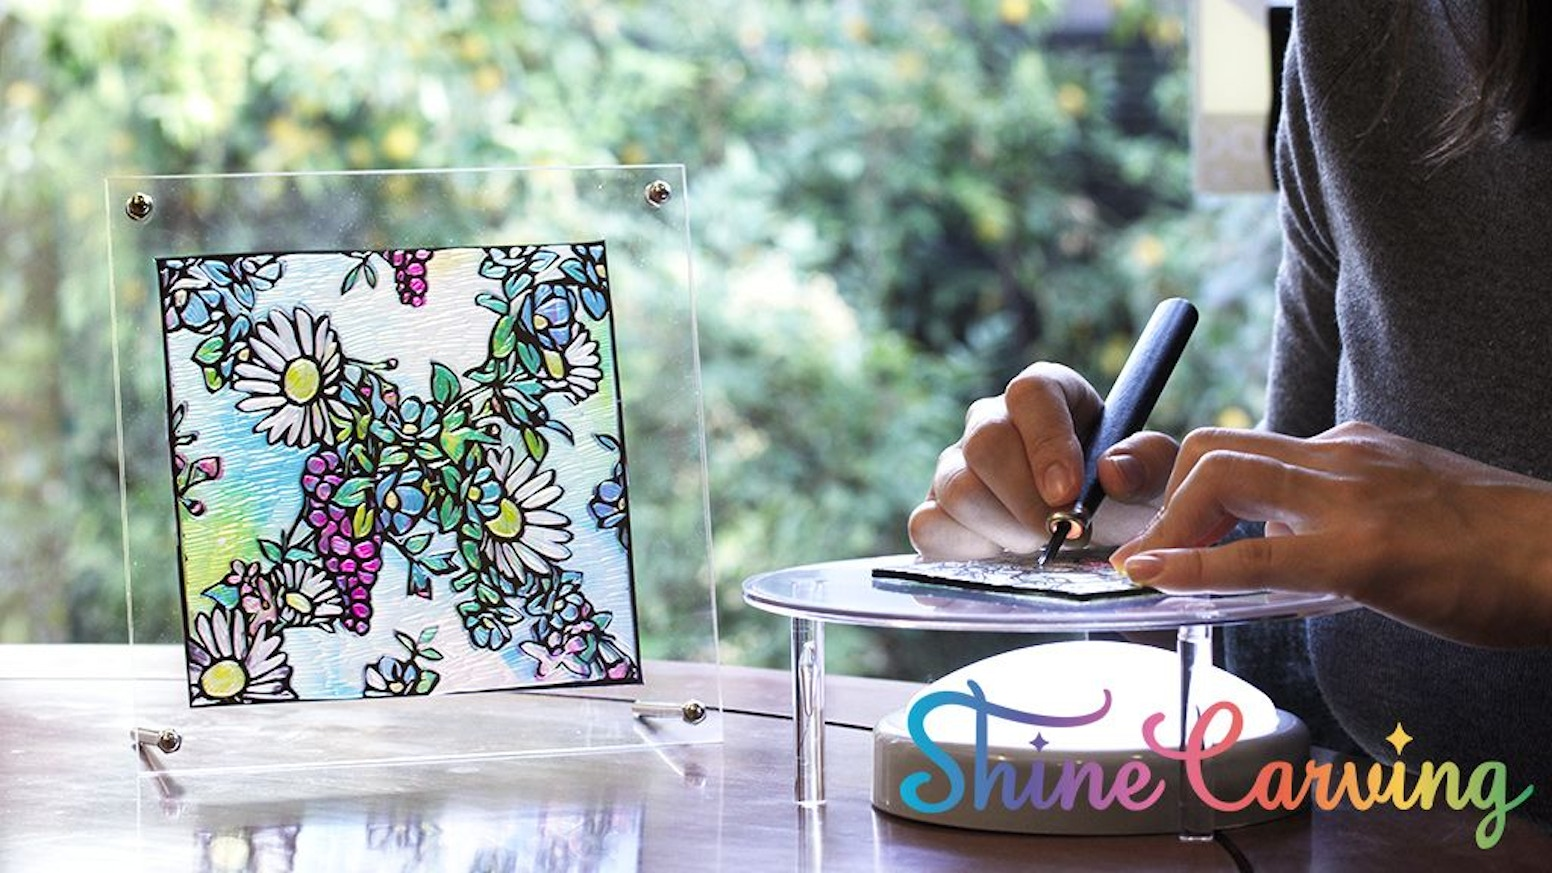 Carve beautiful patterns from designed vinyl sheet, and create a satisfying stained-glass effect with carving kit.